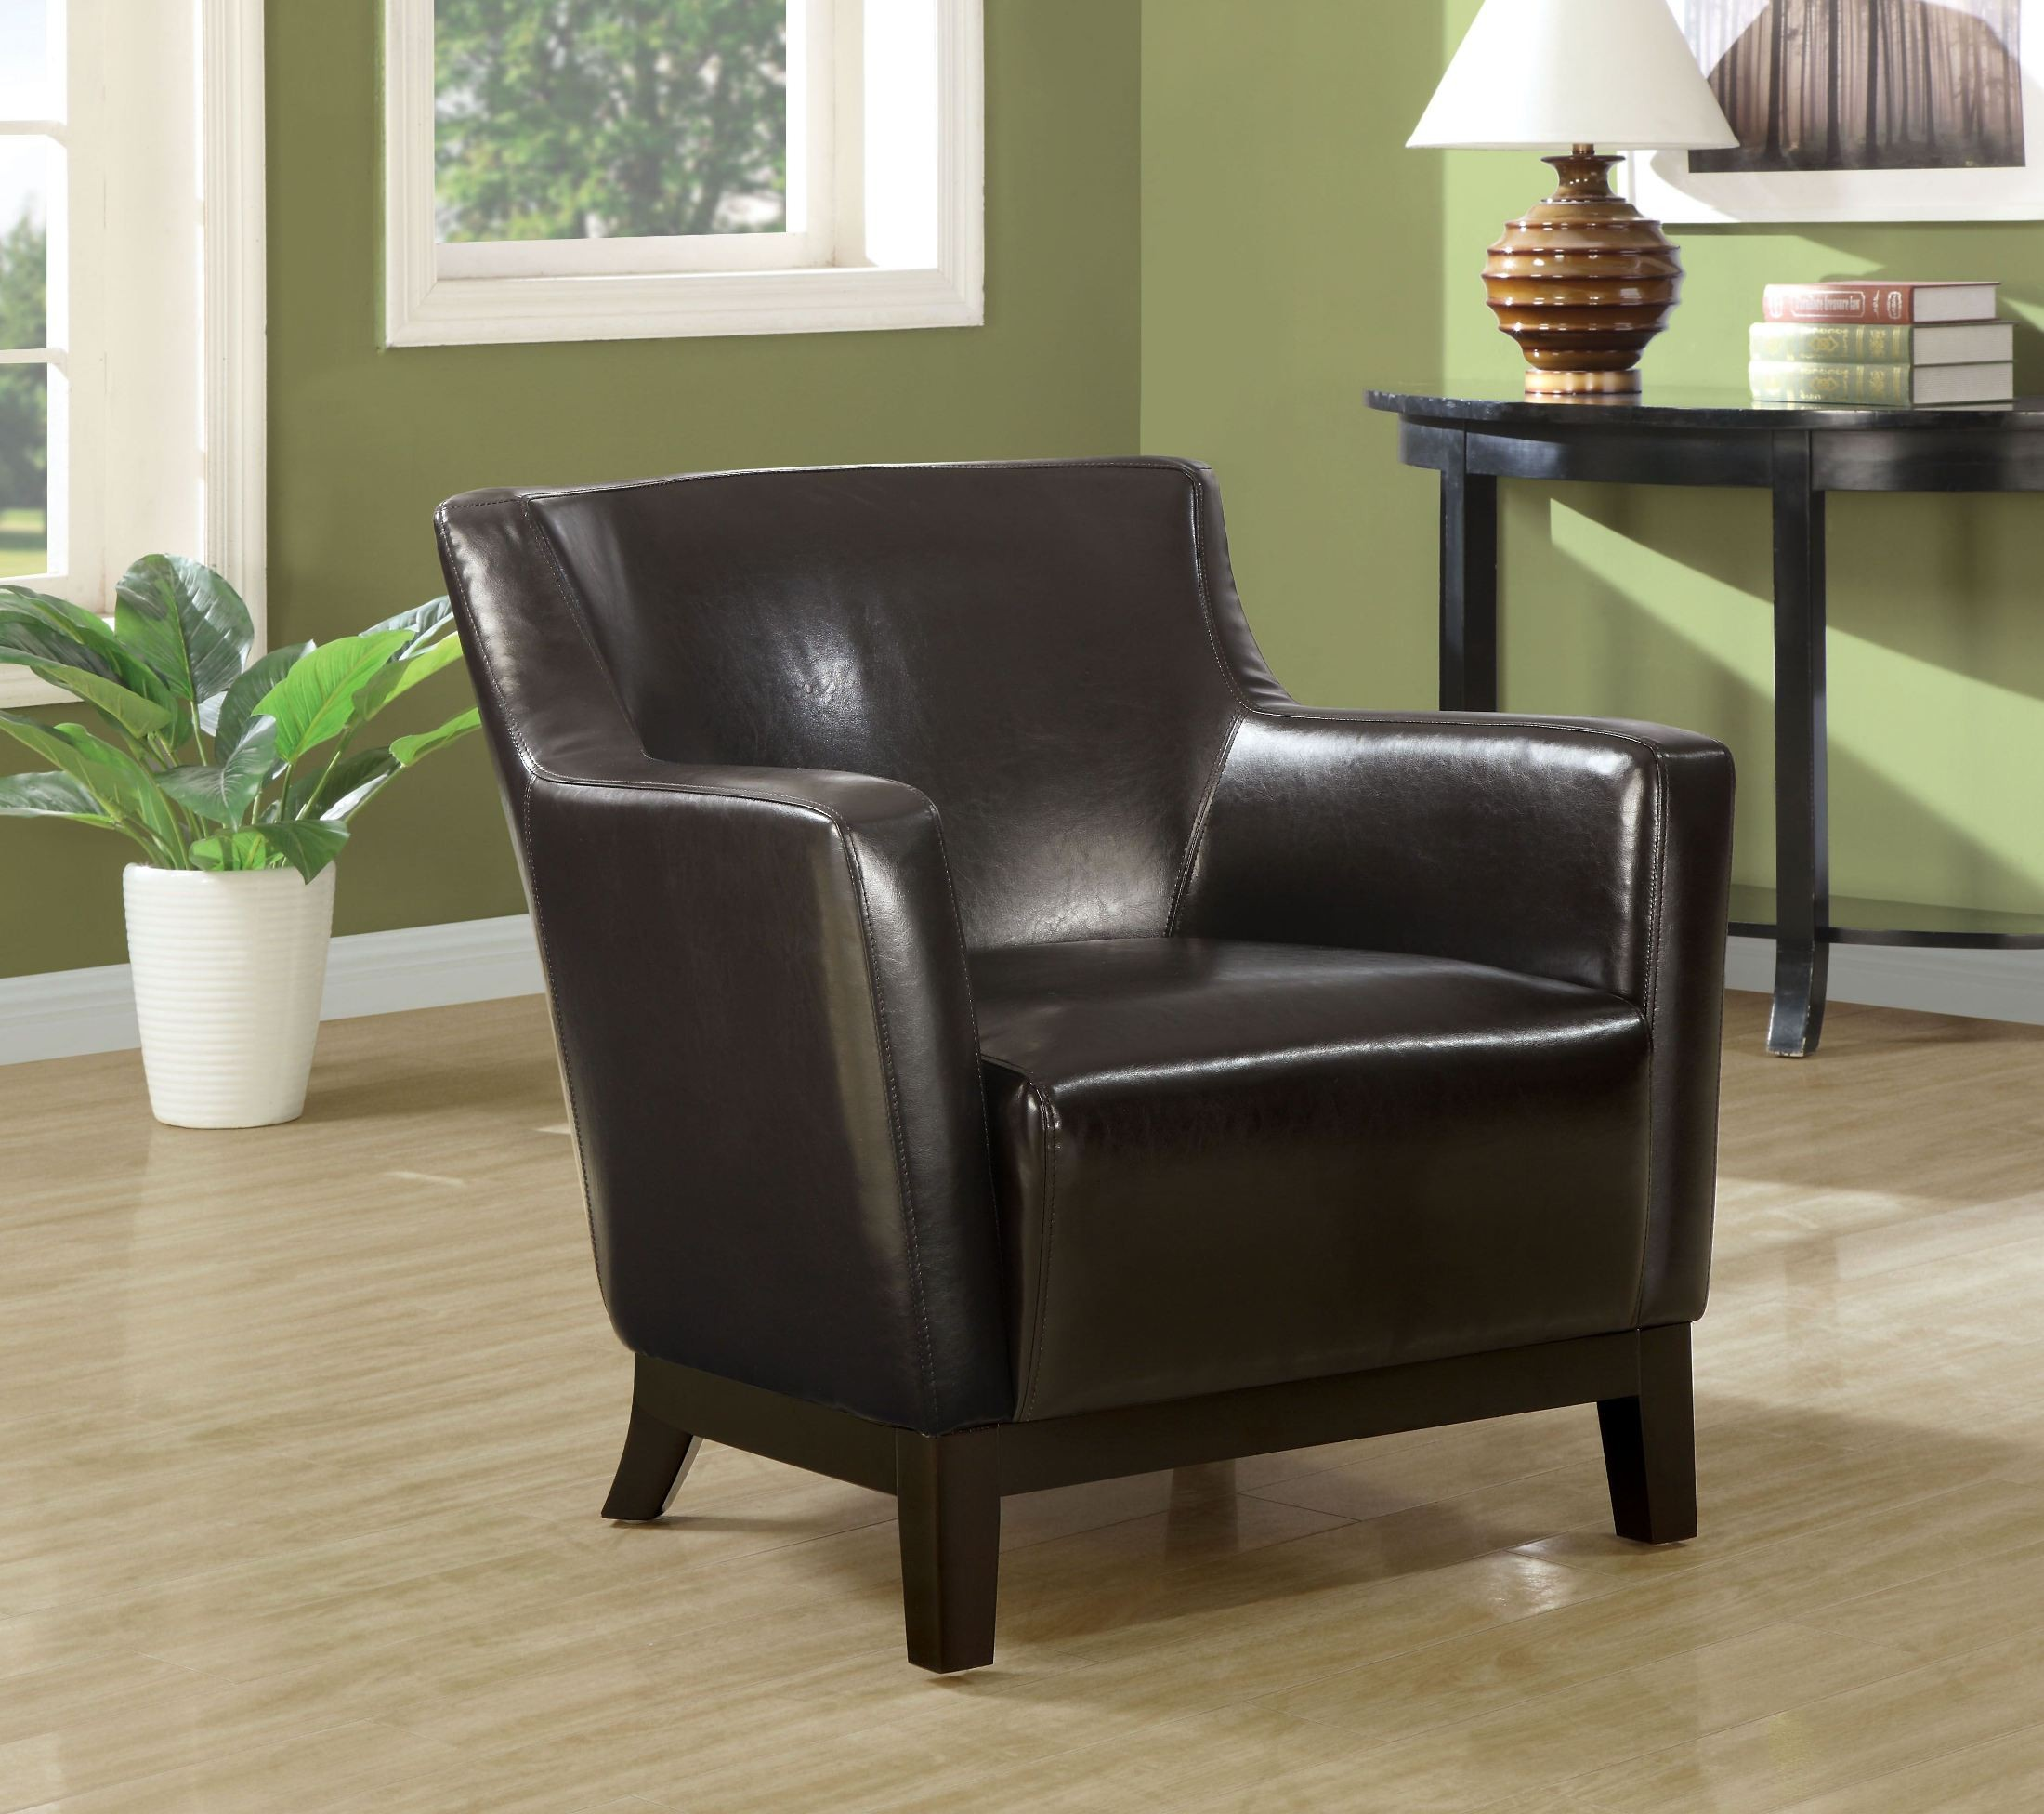 Dark Brown Wood legs Accent Chair from Monarch 8035